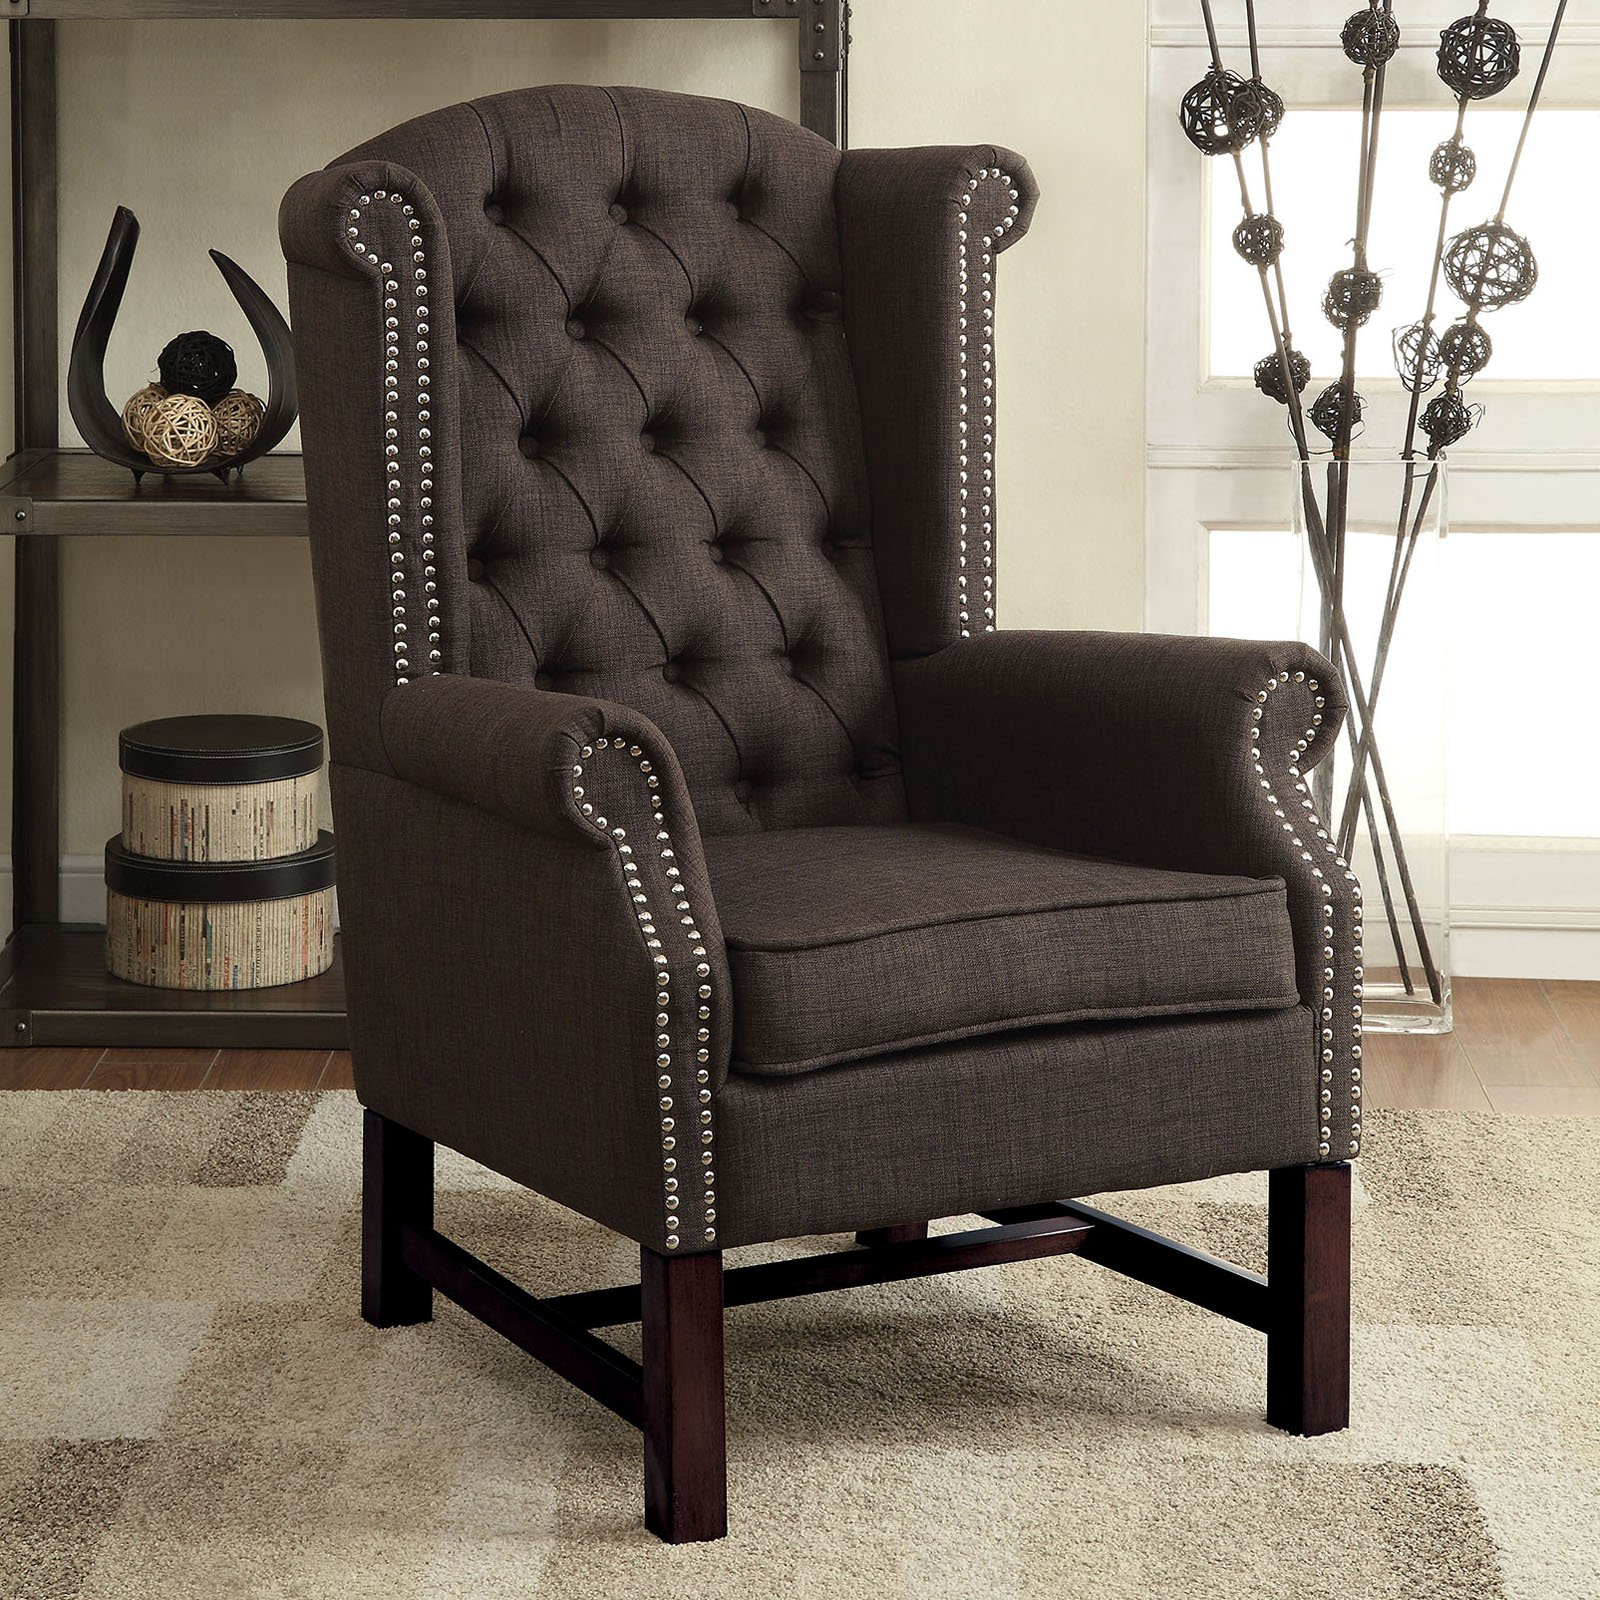 Awe Inspiring Acme Furniture Manly Accent Chair Gray Products In 2019 Onthecornerstone Fun Painted Chair Ideas Images Onthecornerstoneorg